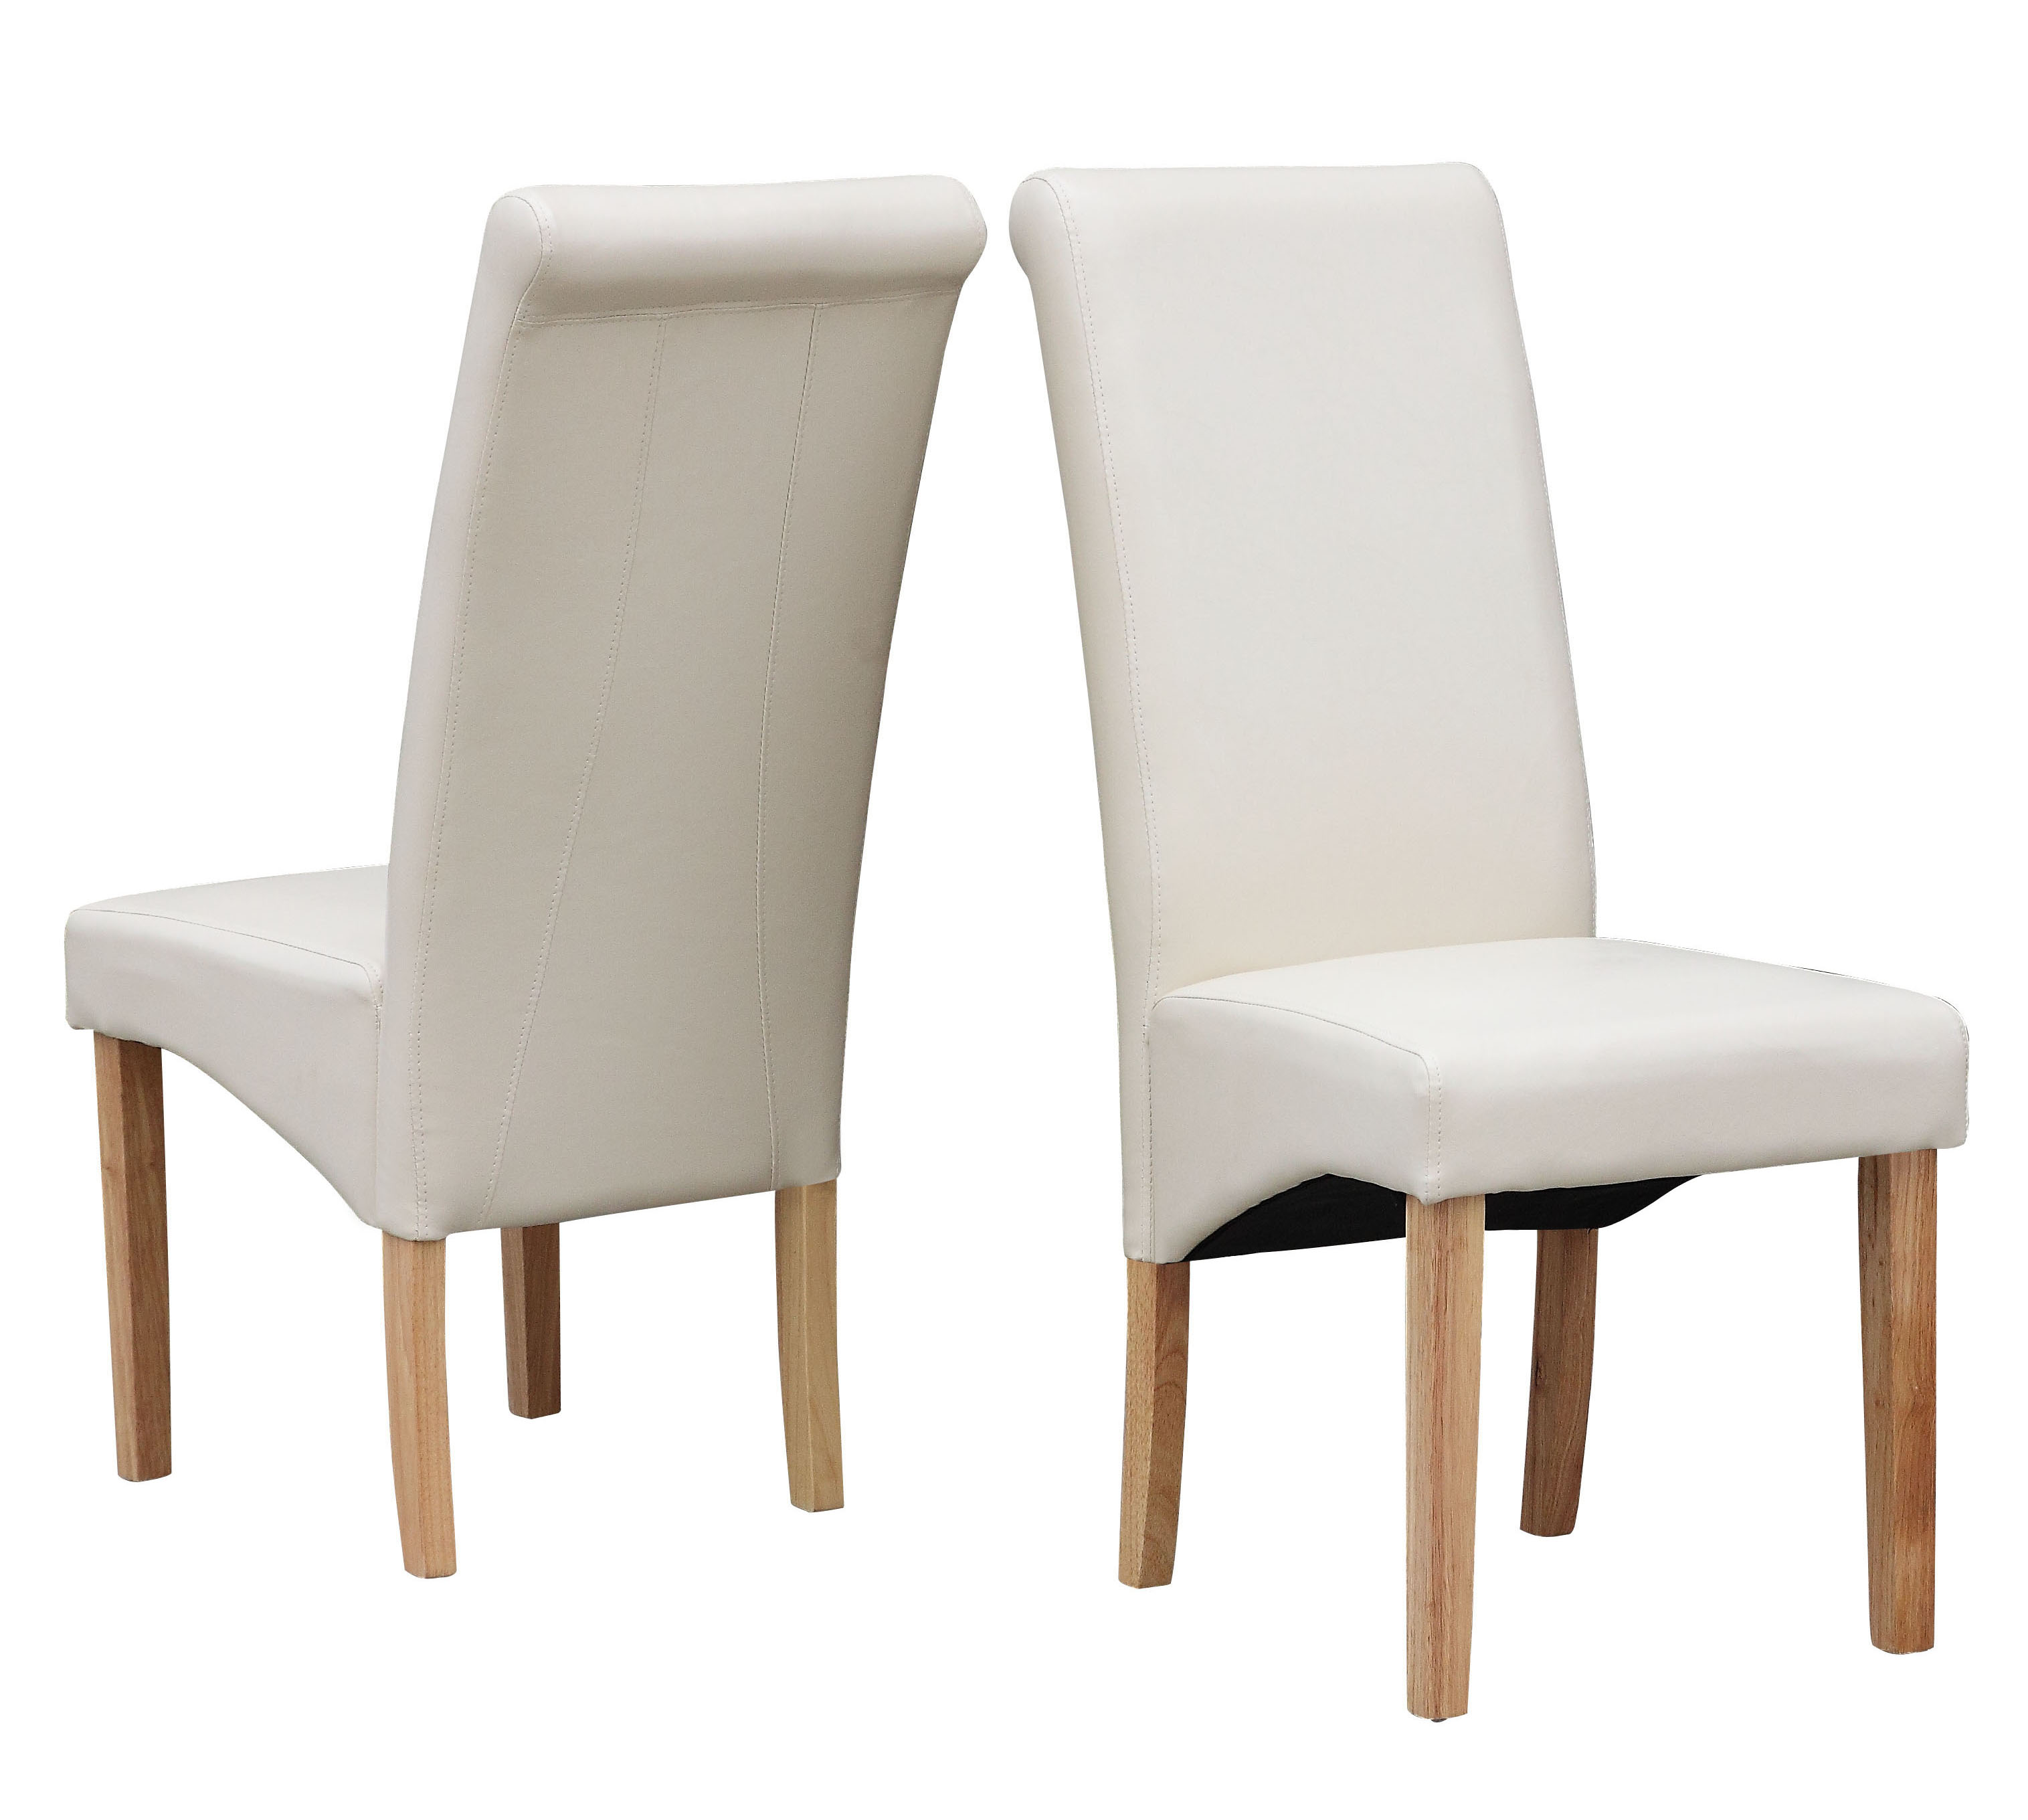 Cream Leather Dining Chairs Cream Modern Dining Room Chair Faux Leather Roll Top